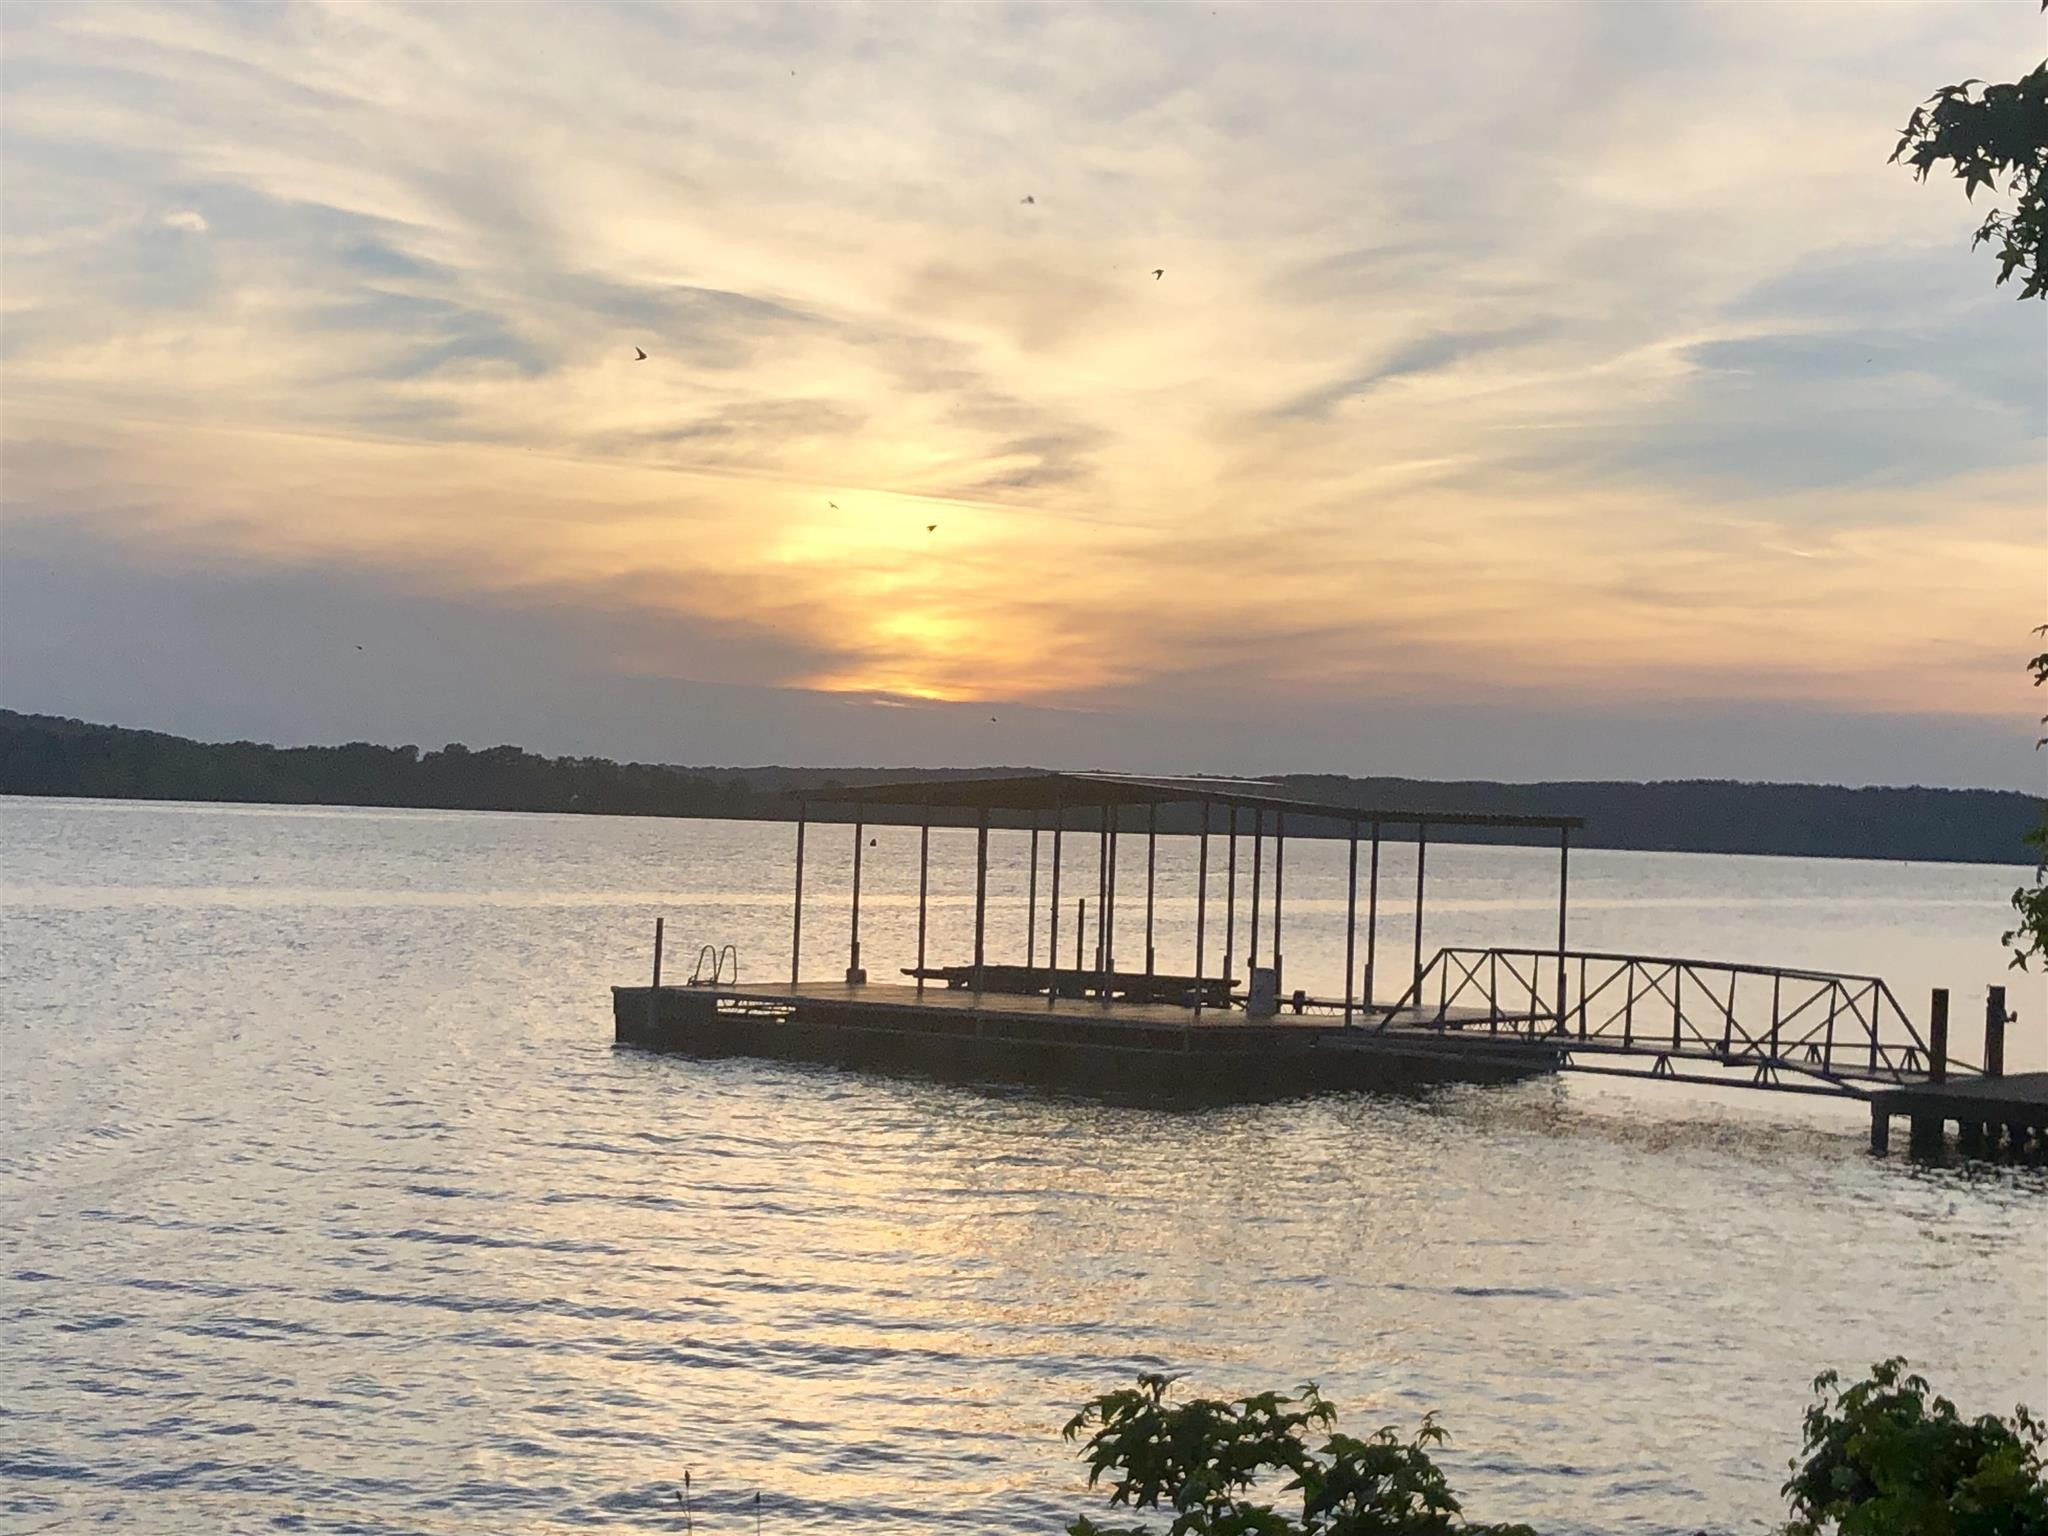 630 Lakefront Dr, Waverly, TN 37185 - Waverly, TN real estate listing